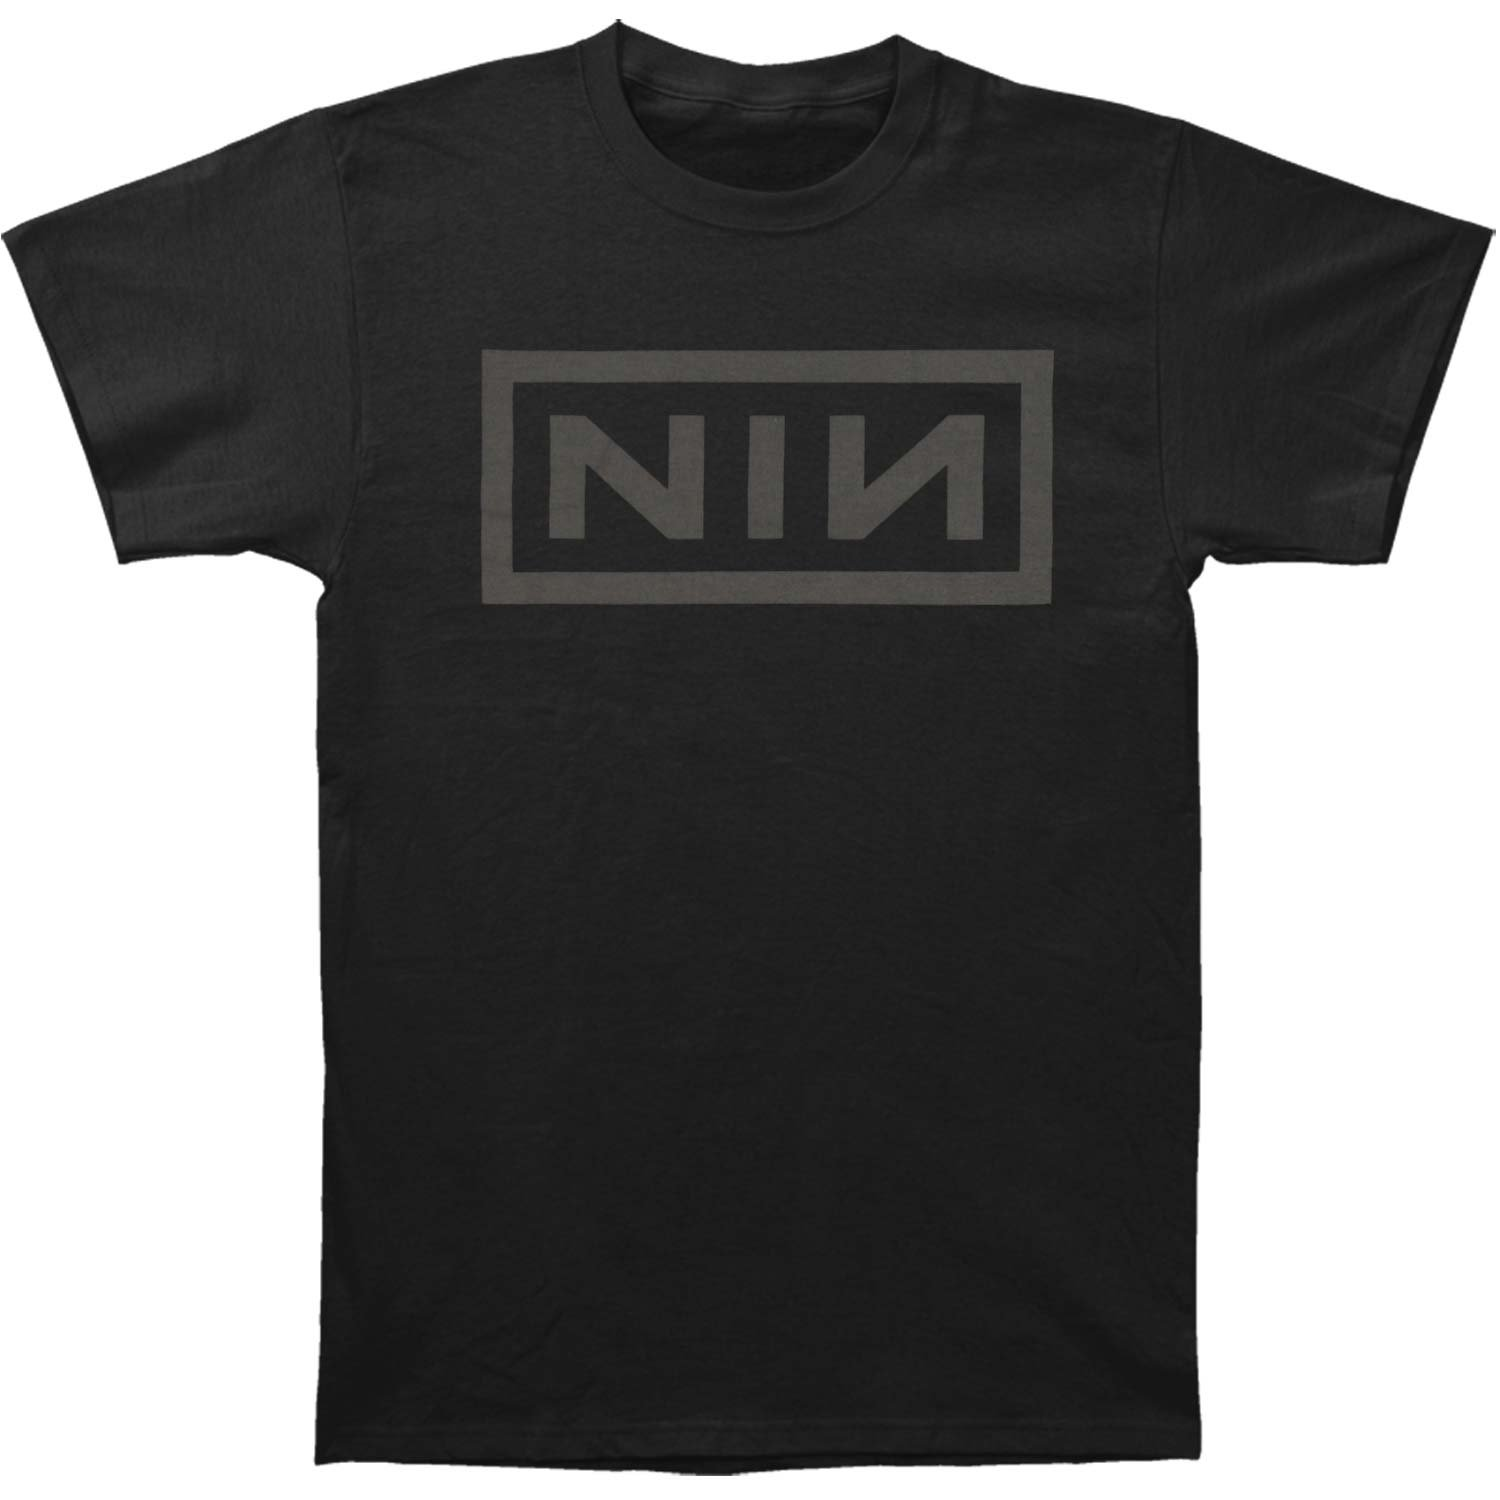 Nine Inch Nails Men's Grey Logo On Black Slim Fit T-Shirt Large Black